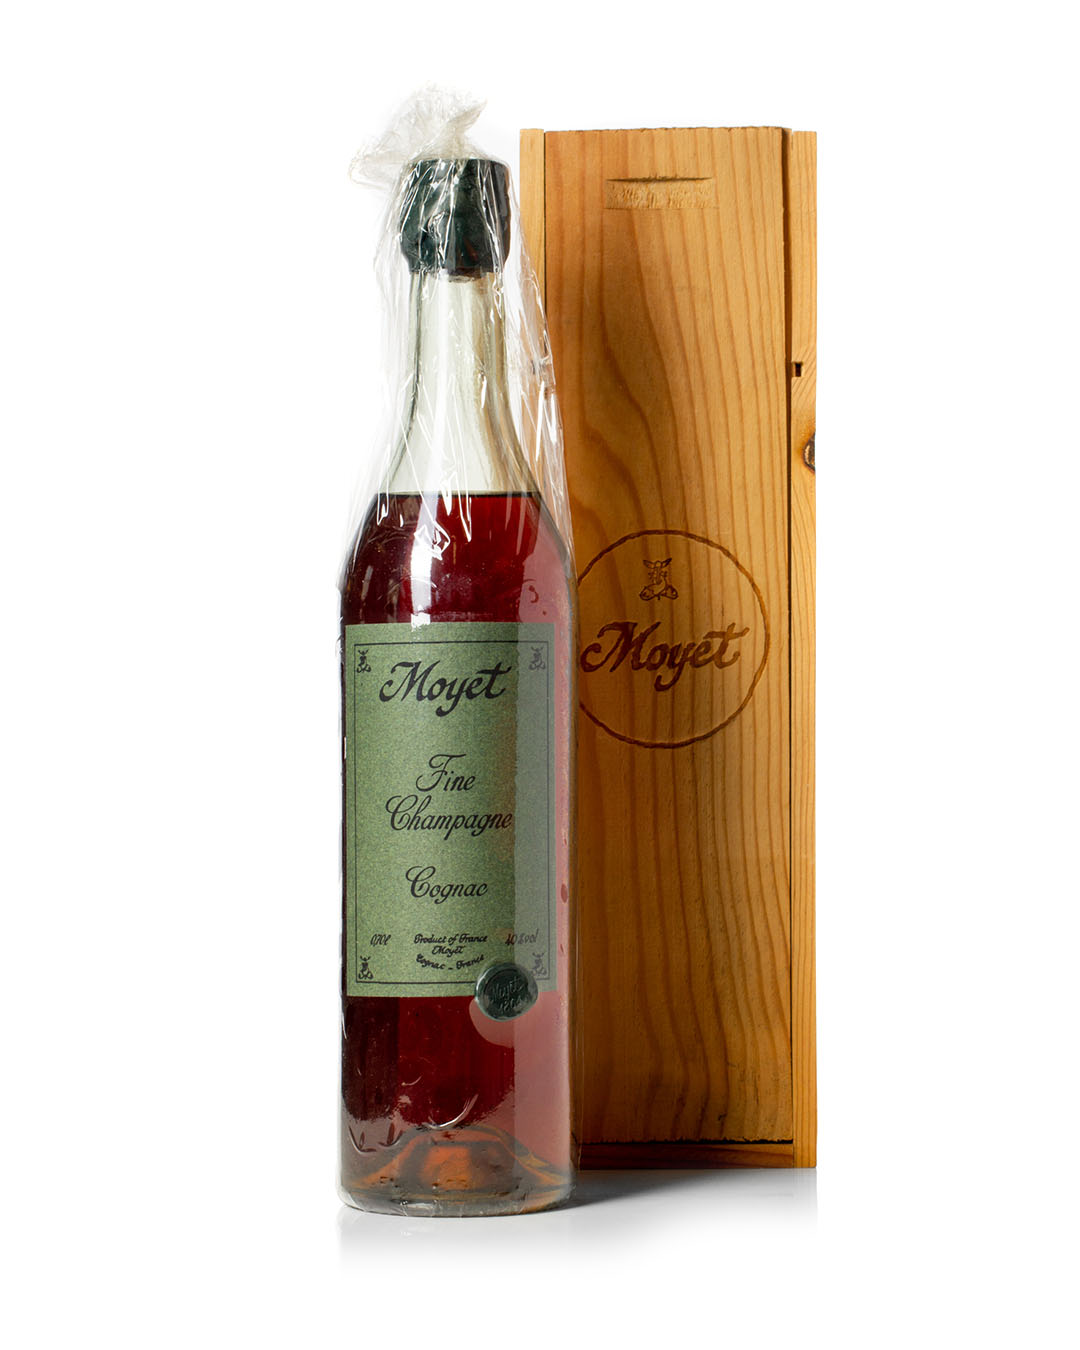 We have this bottle of Moyet 1864 Fine Champagne Cognac available for sale on our online shop.